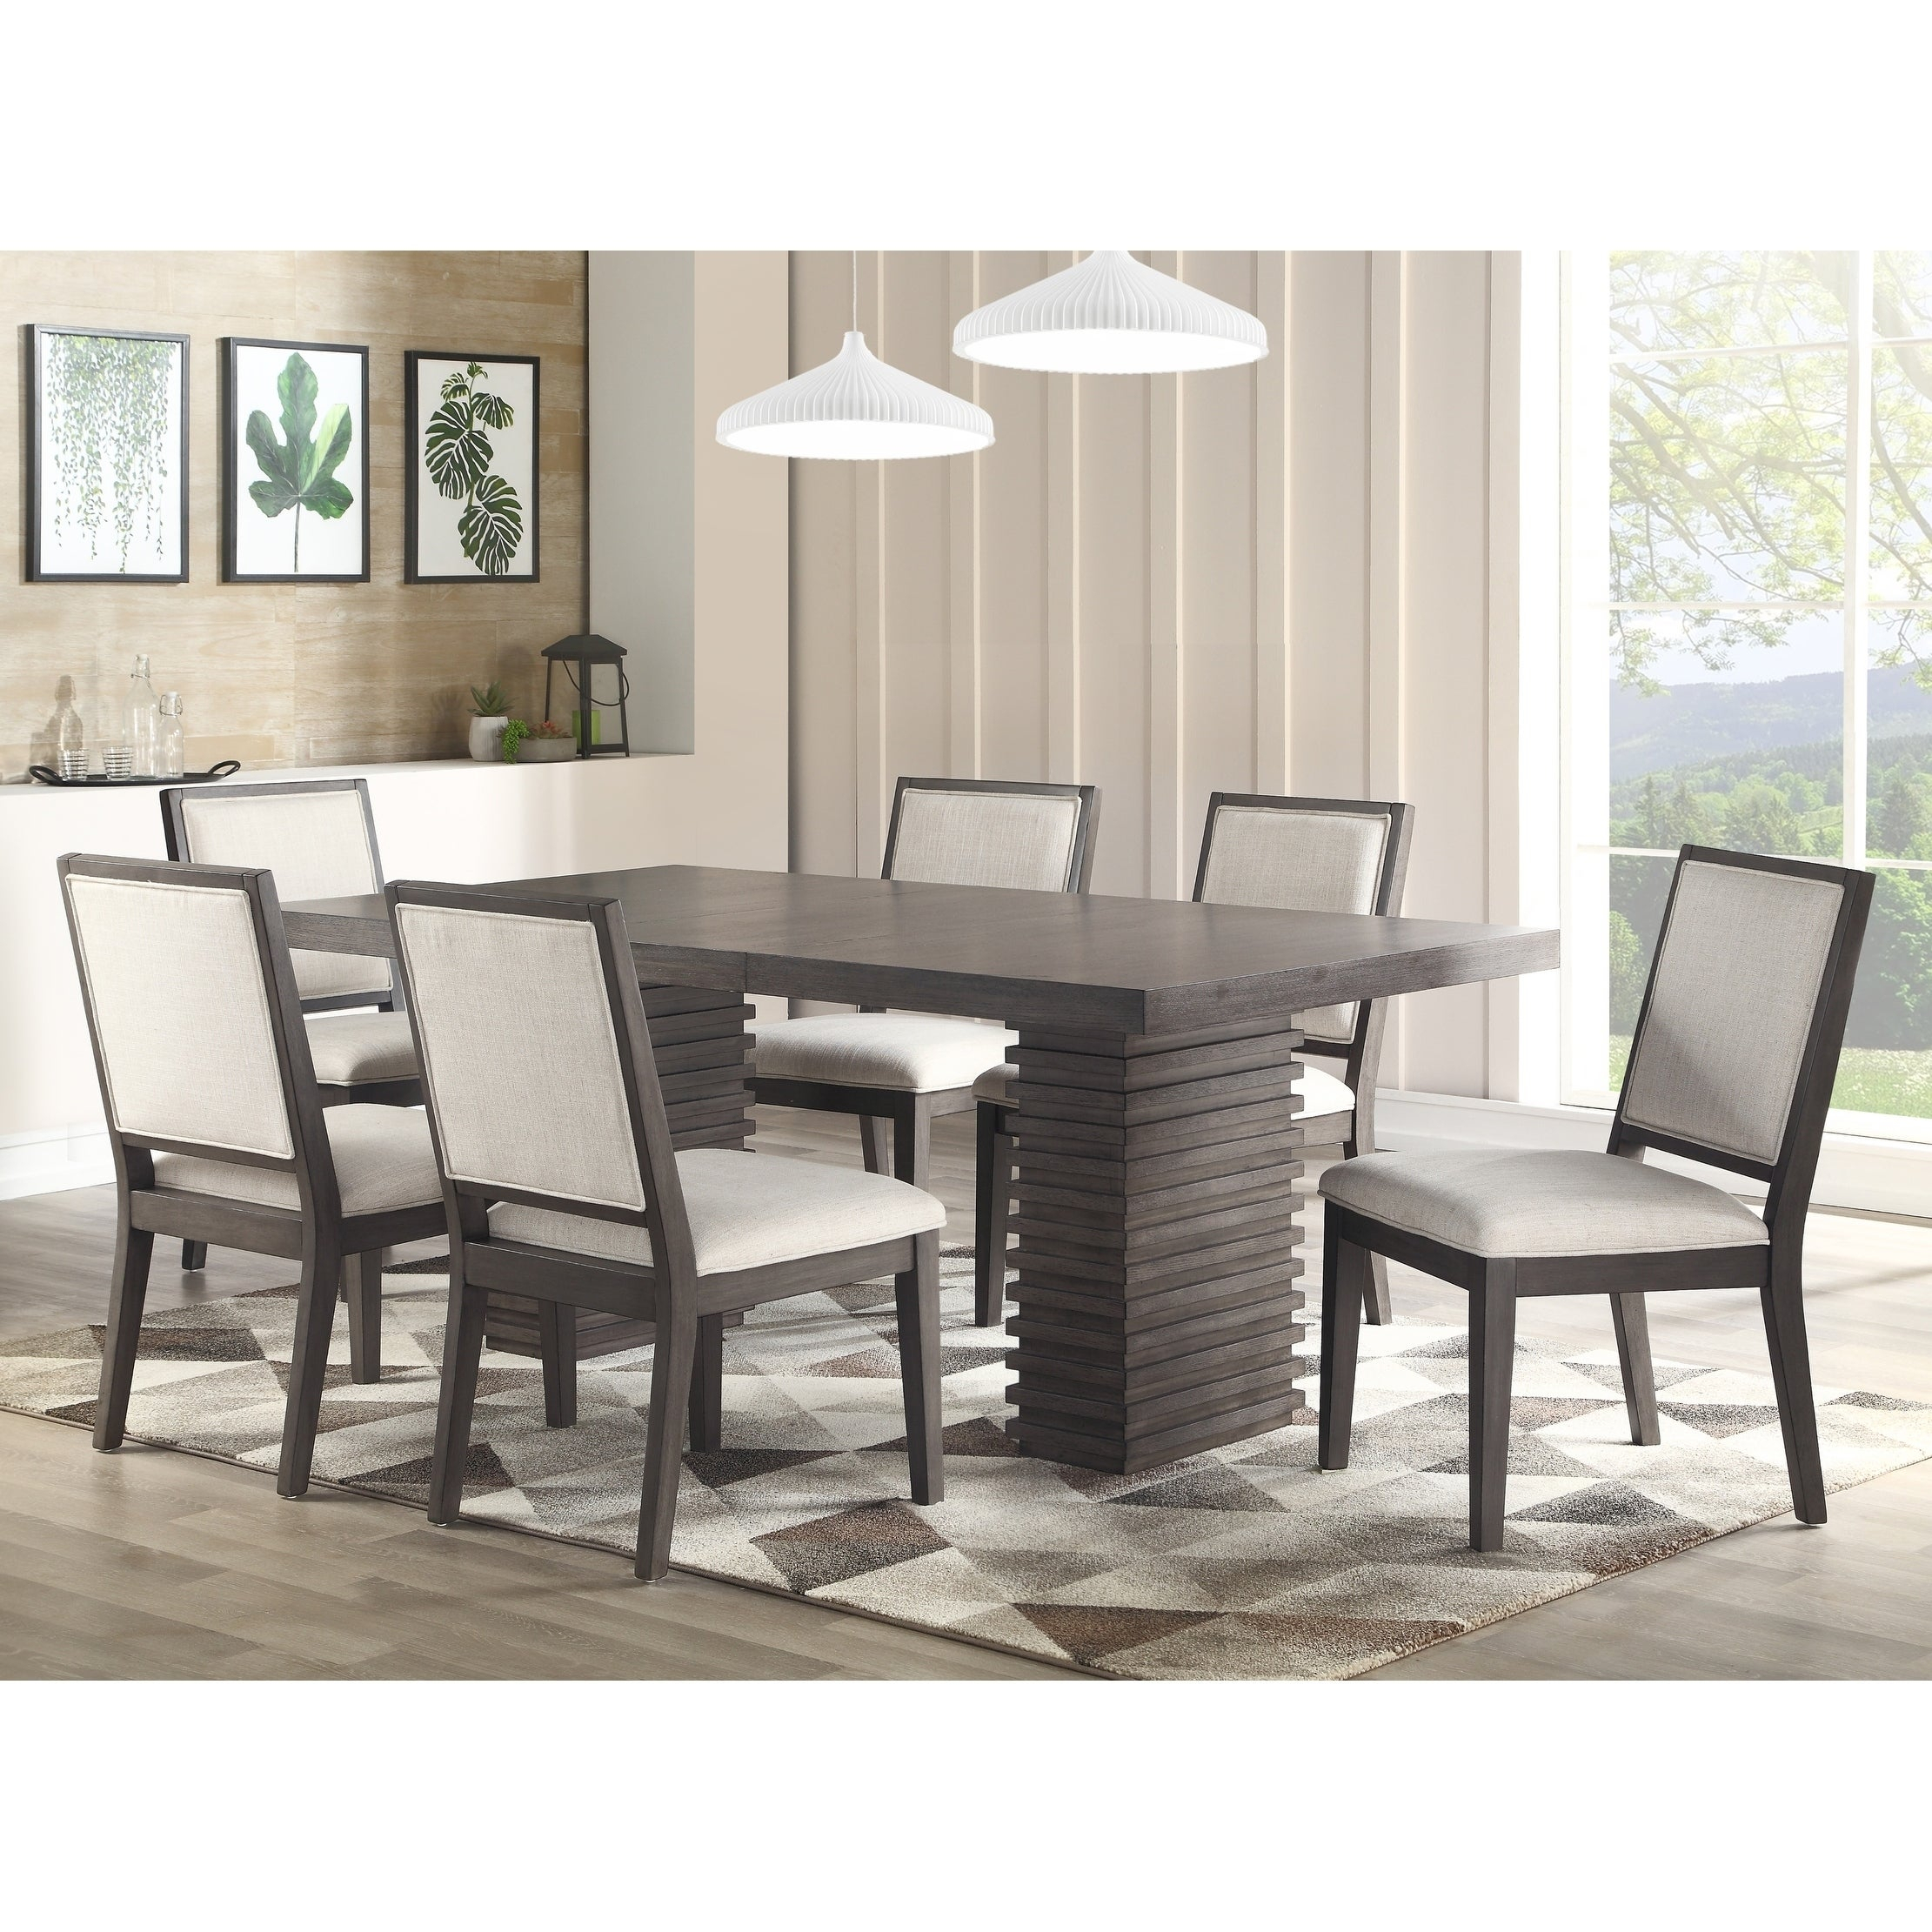 Dining Sets Online: 20 Best Ideas Of Autberry 5 Piece Dining Sets